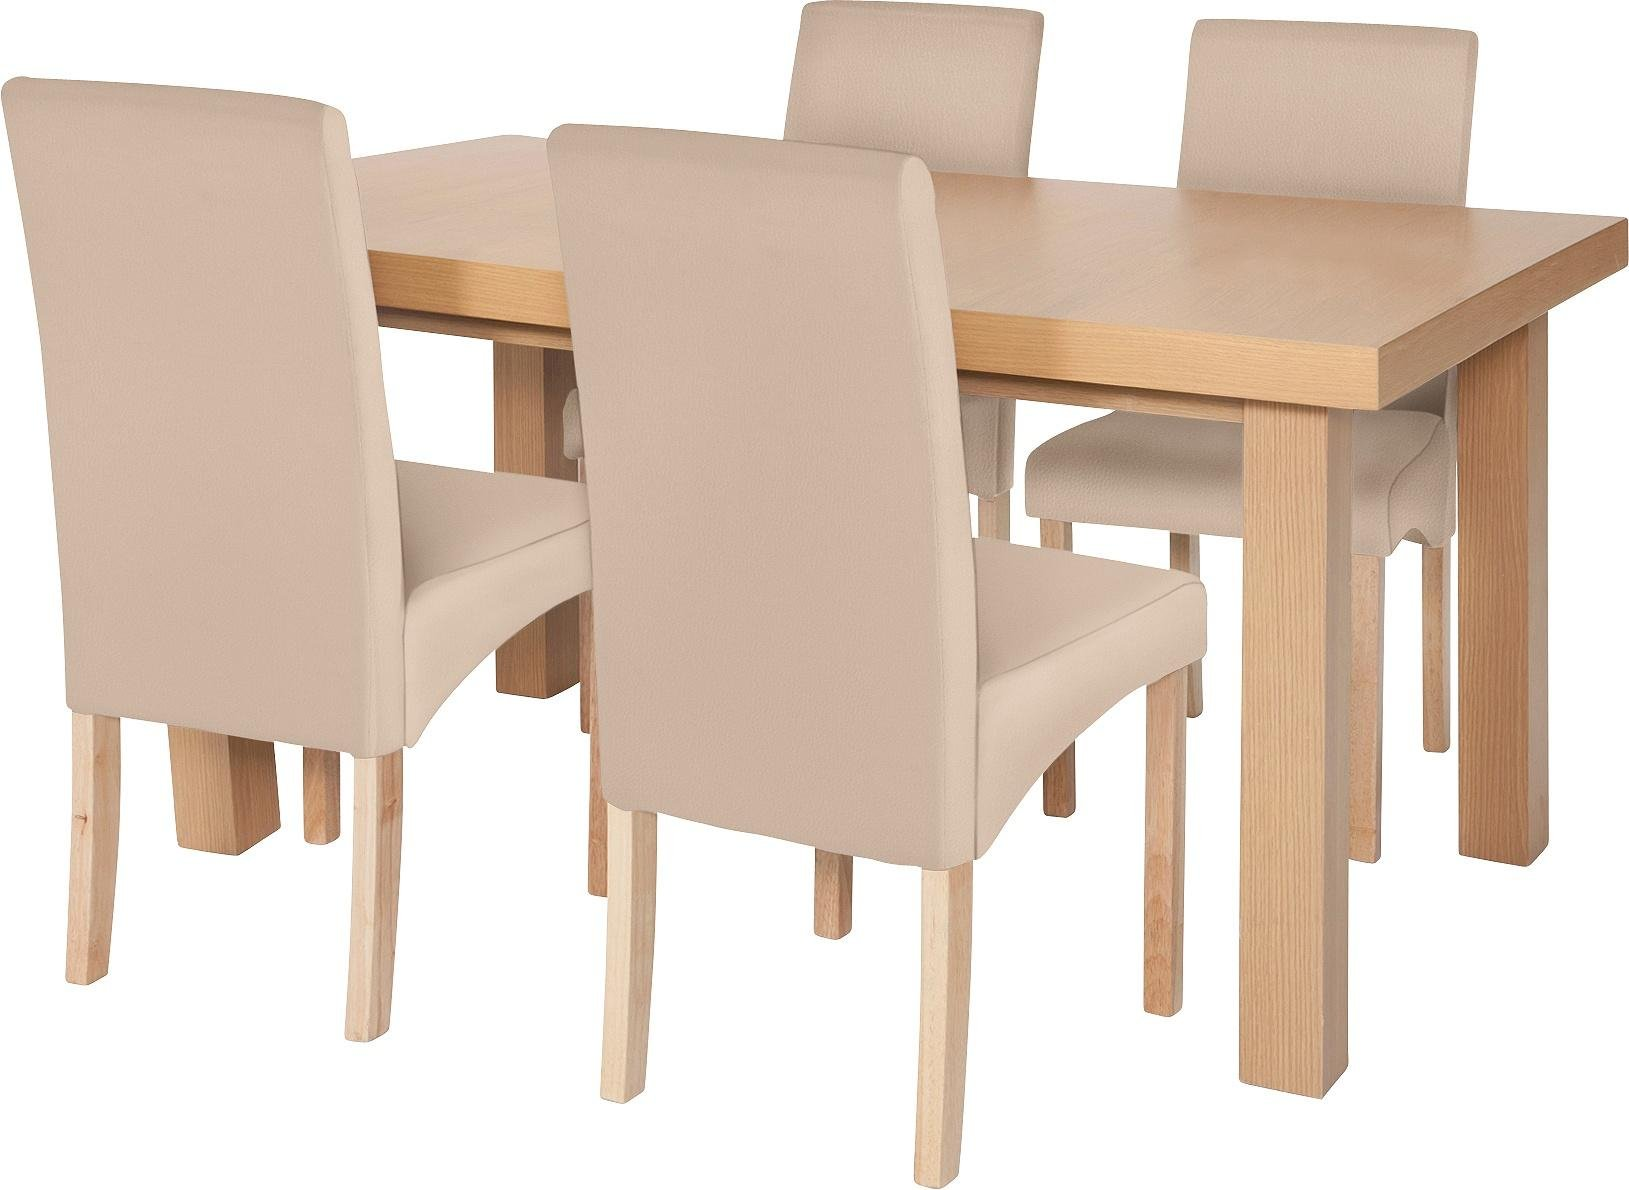 cosgrove extendable oak dining table and 6 charcoal chairs. collection cosgrove extendable table \u0026 4 chairs - cream oak dining and 6 charcoal b